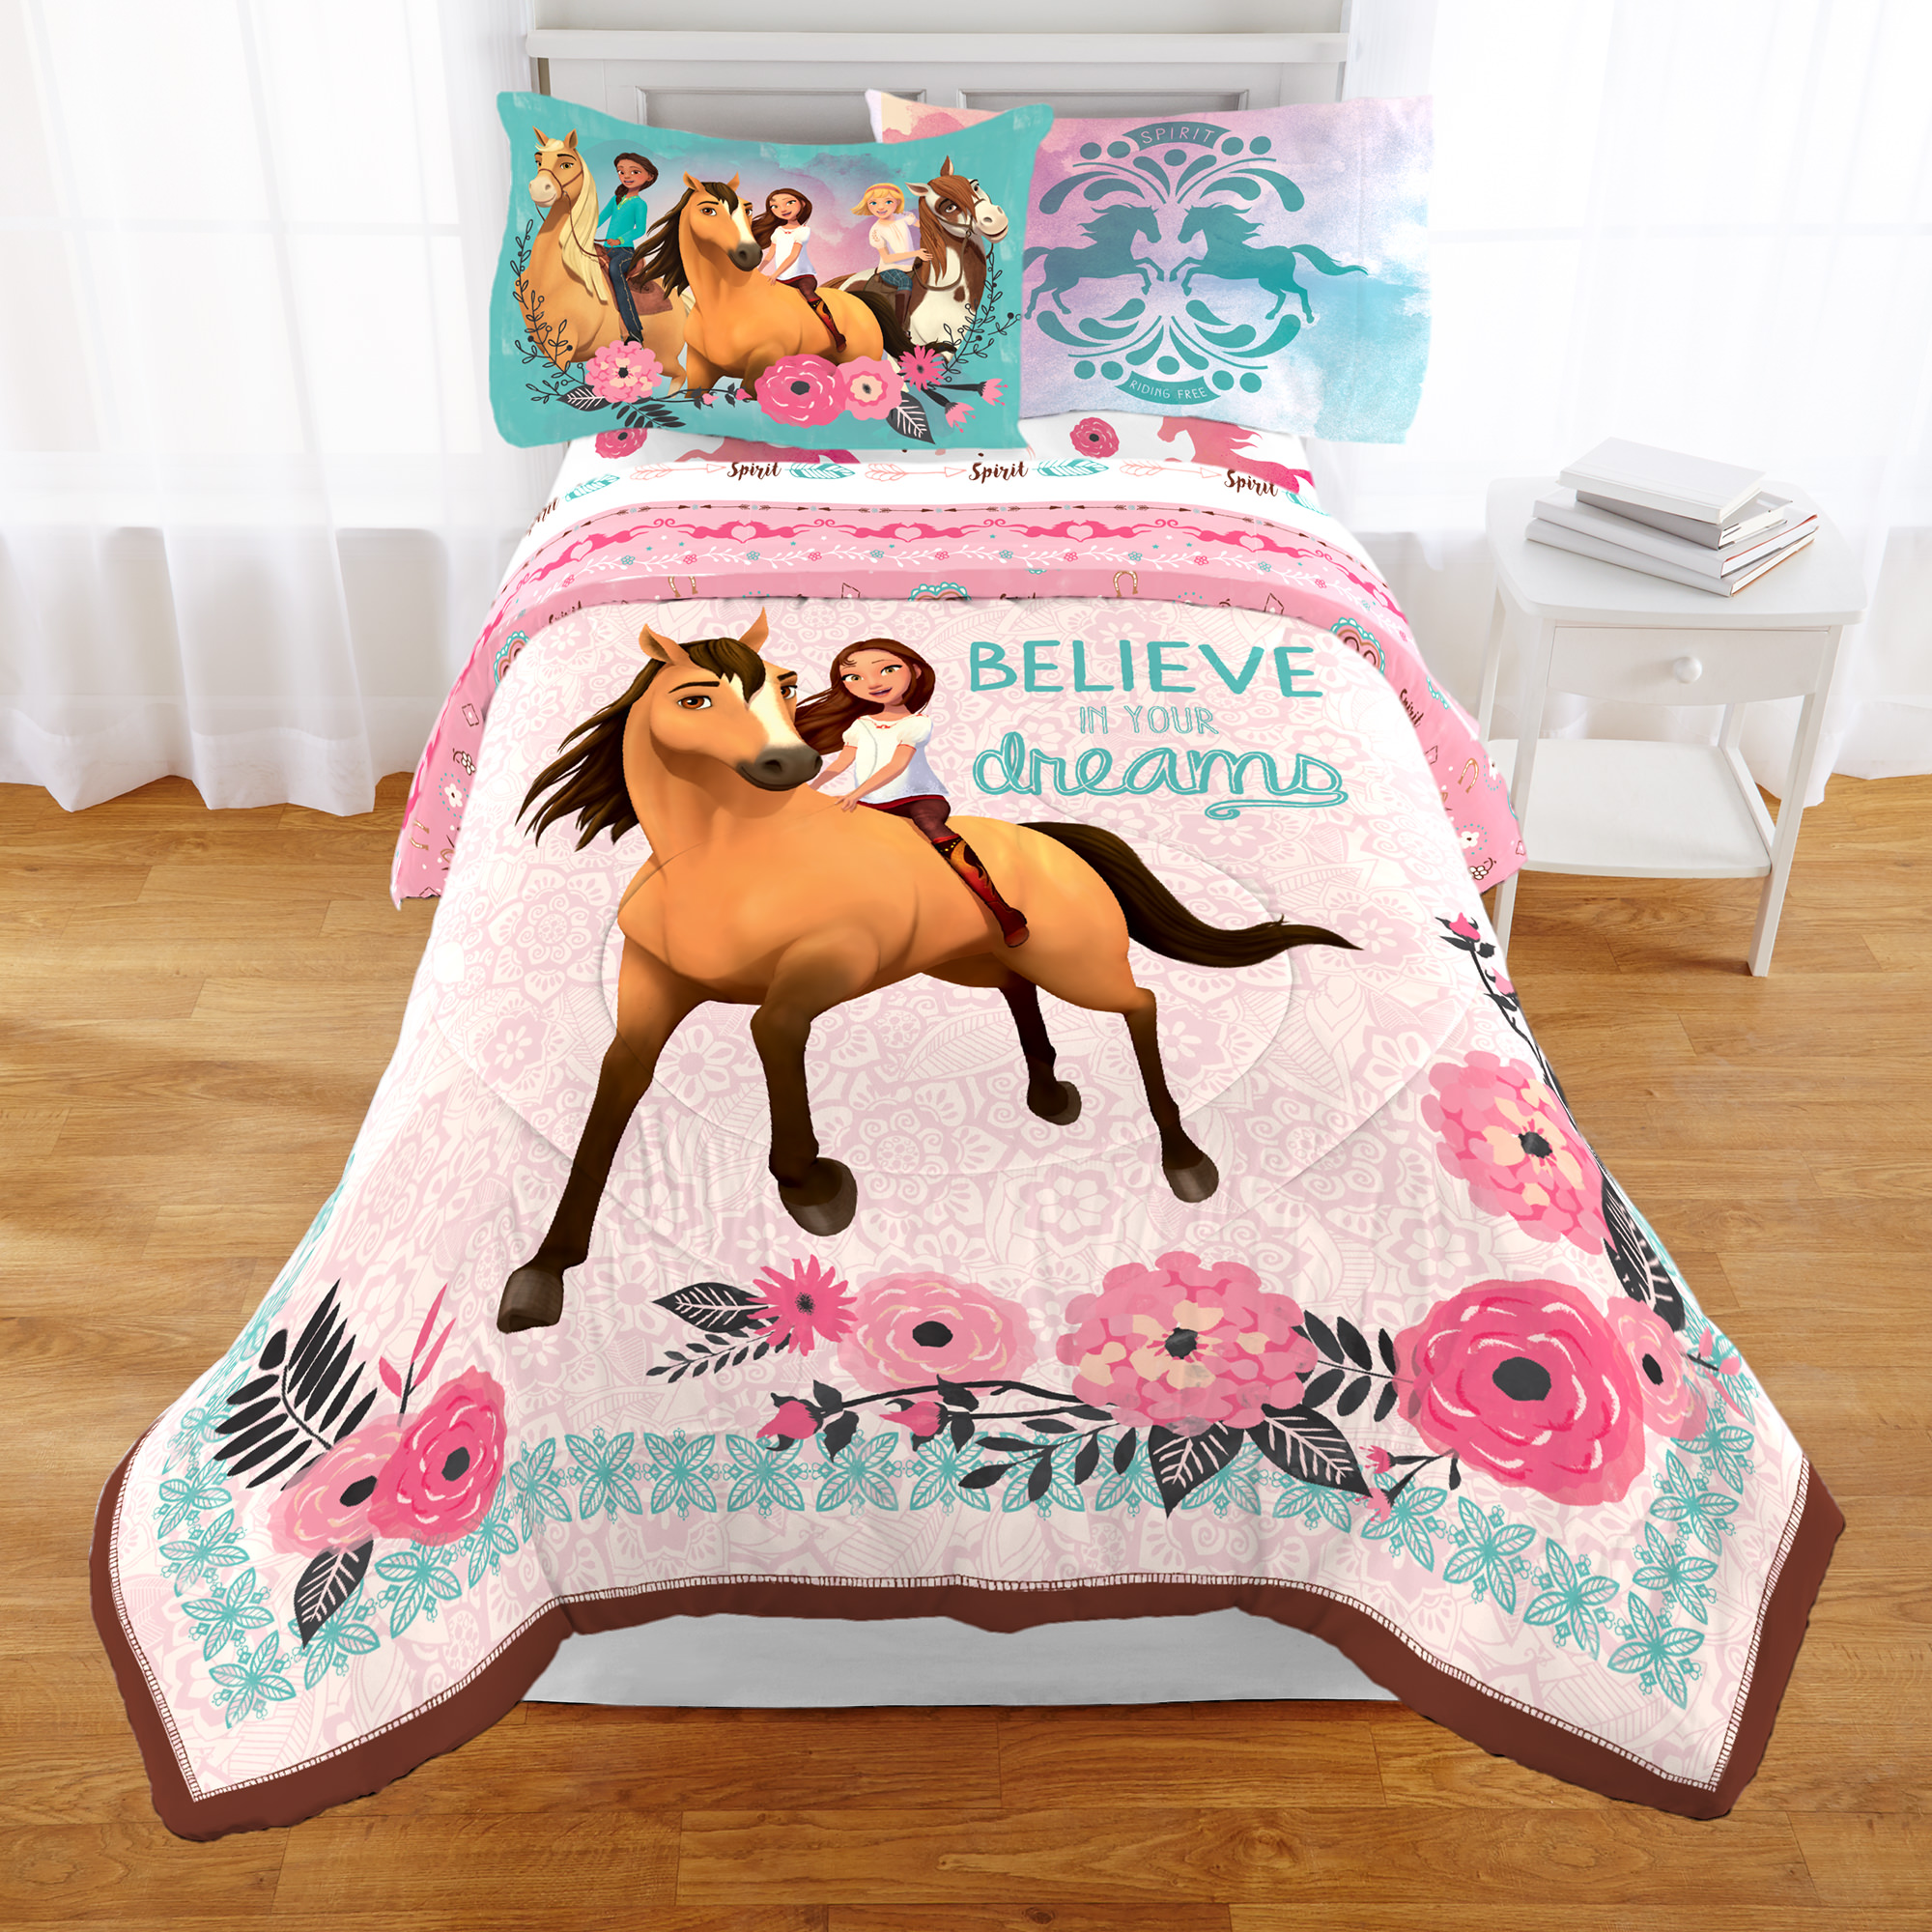 Dream Works Spirit 'Giddy Up' Kids Bedding Comforter, Twin by Franco Manufacturing